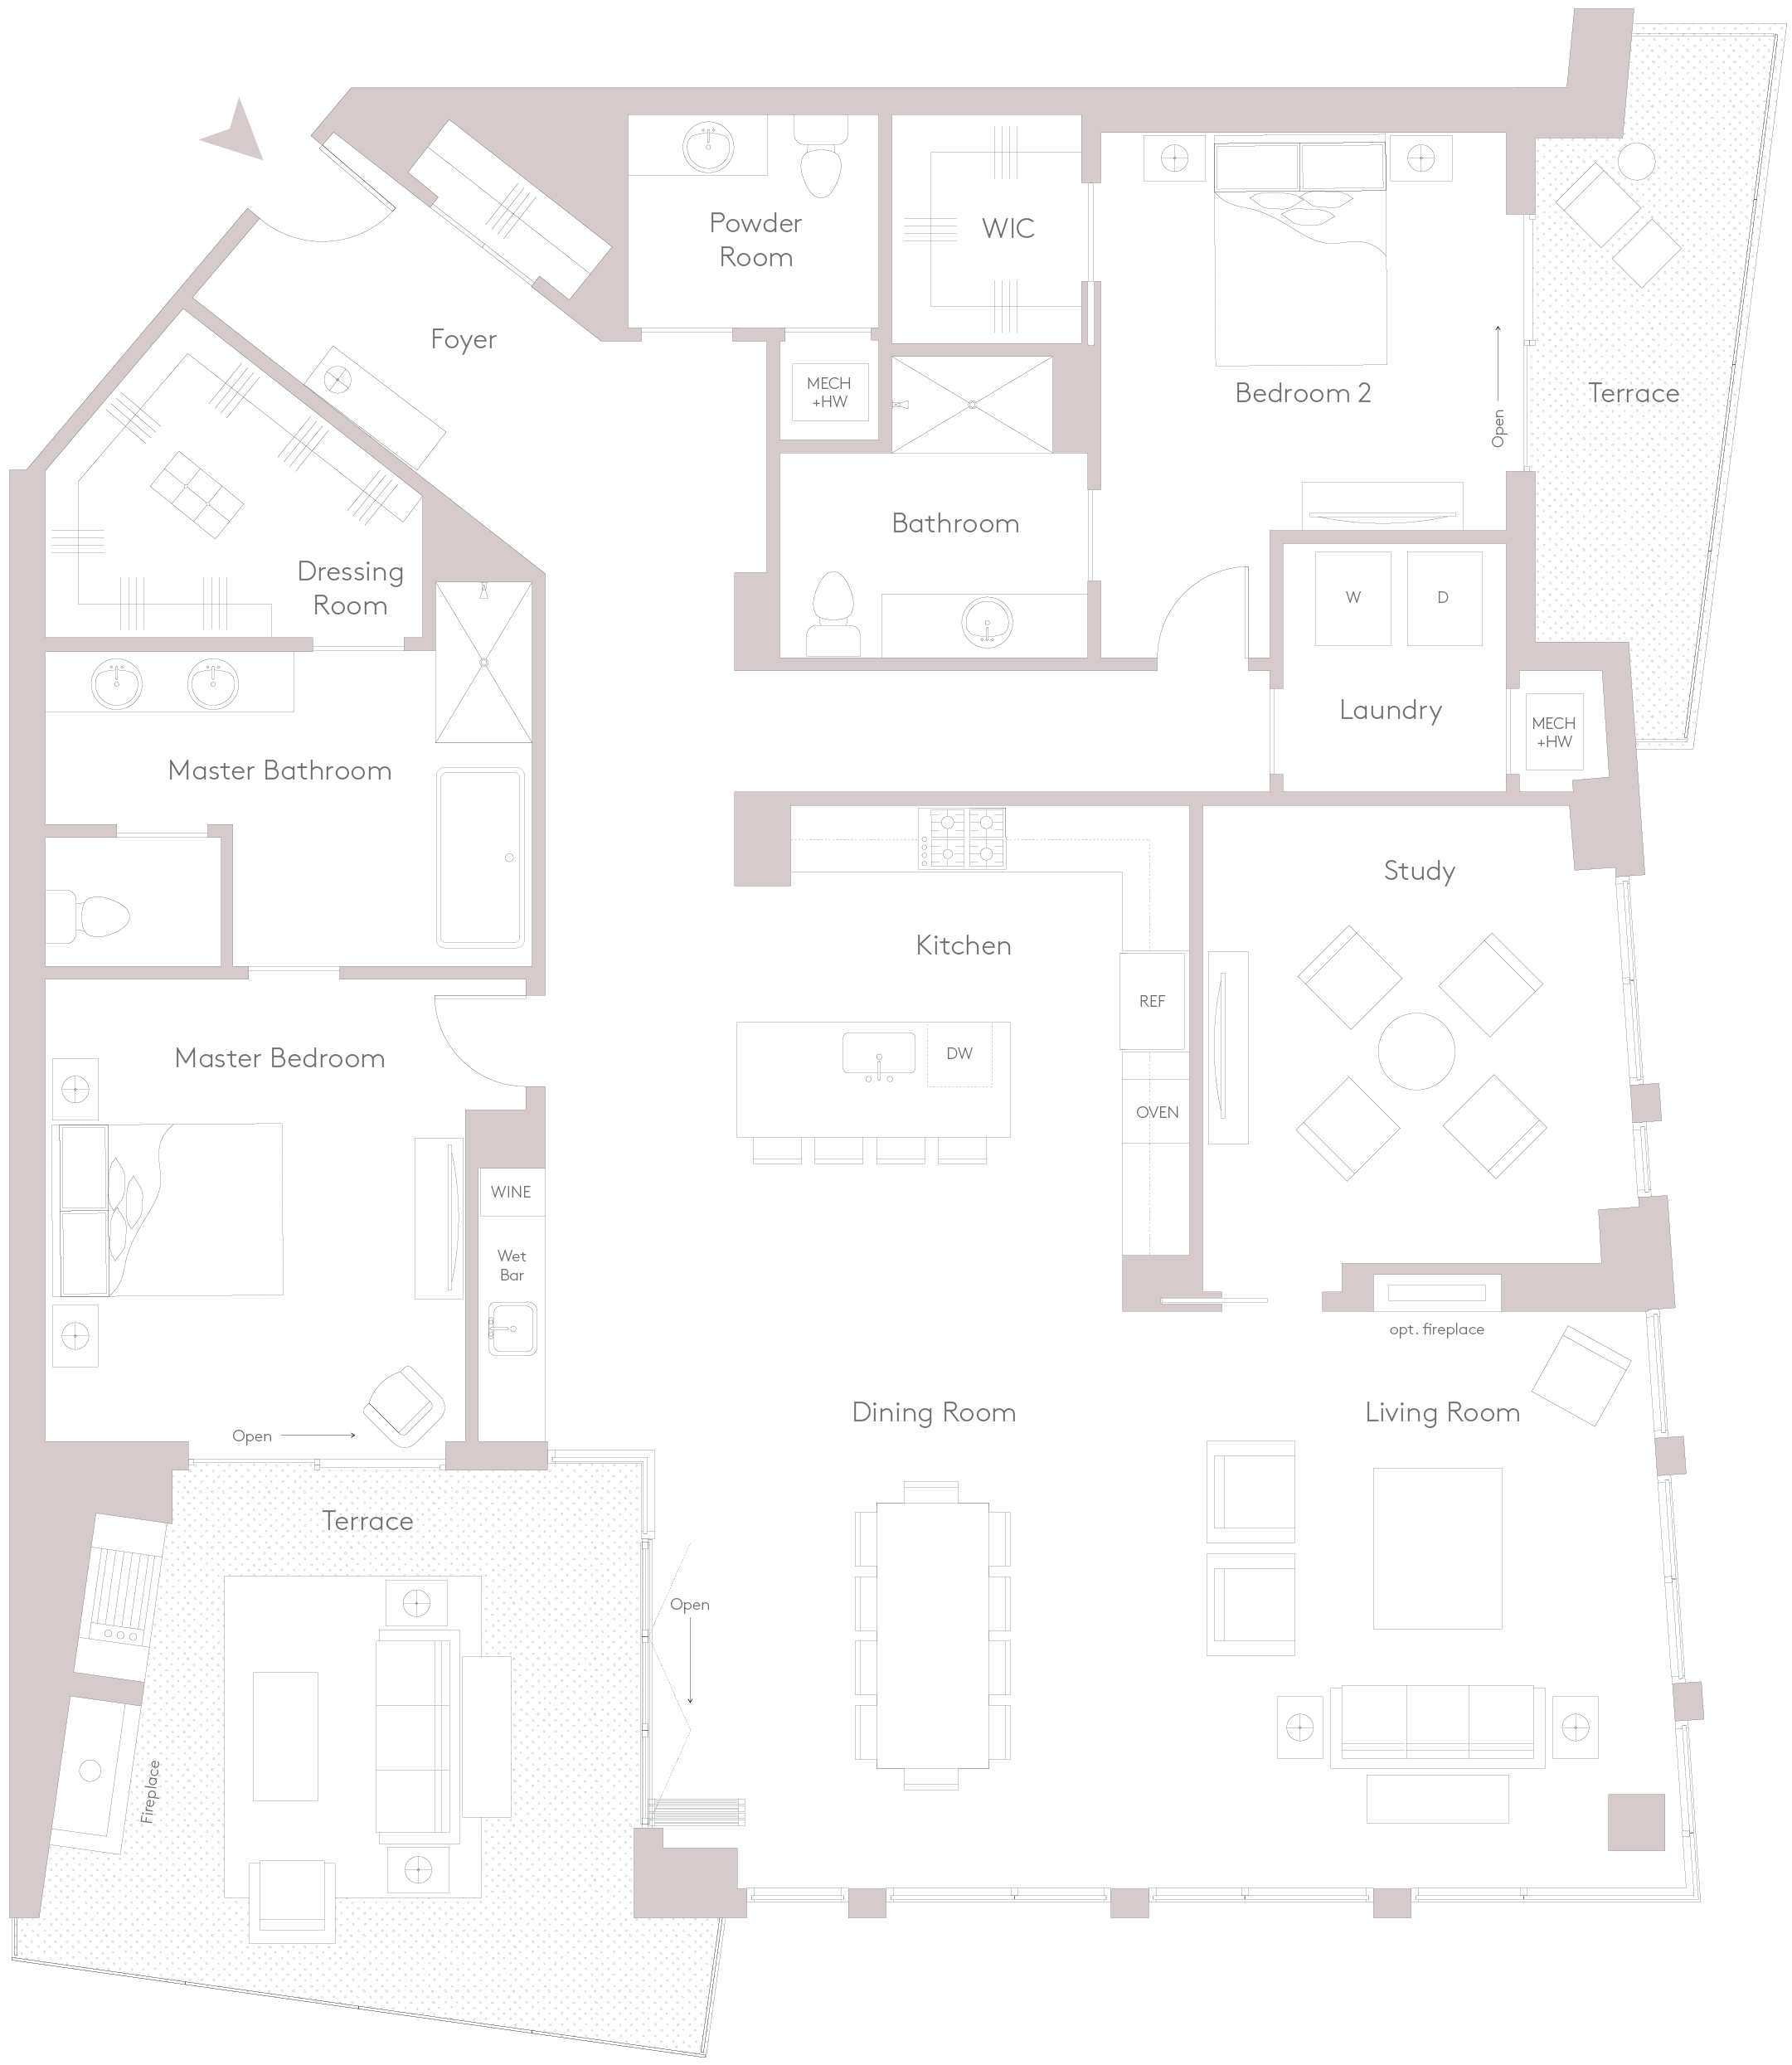 Apartment floor plans at The Charles